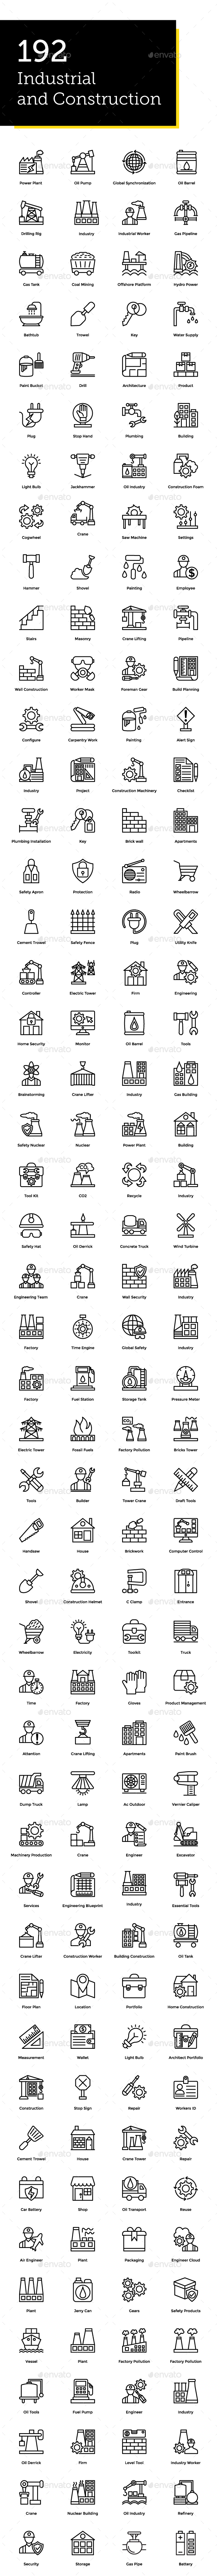 GraphicRiver 192 Industrial and Construction Icon 21179728